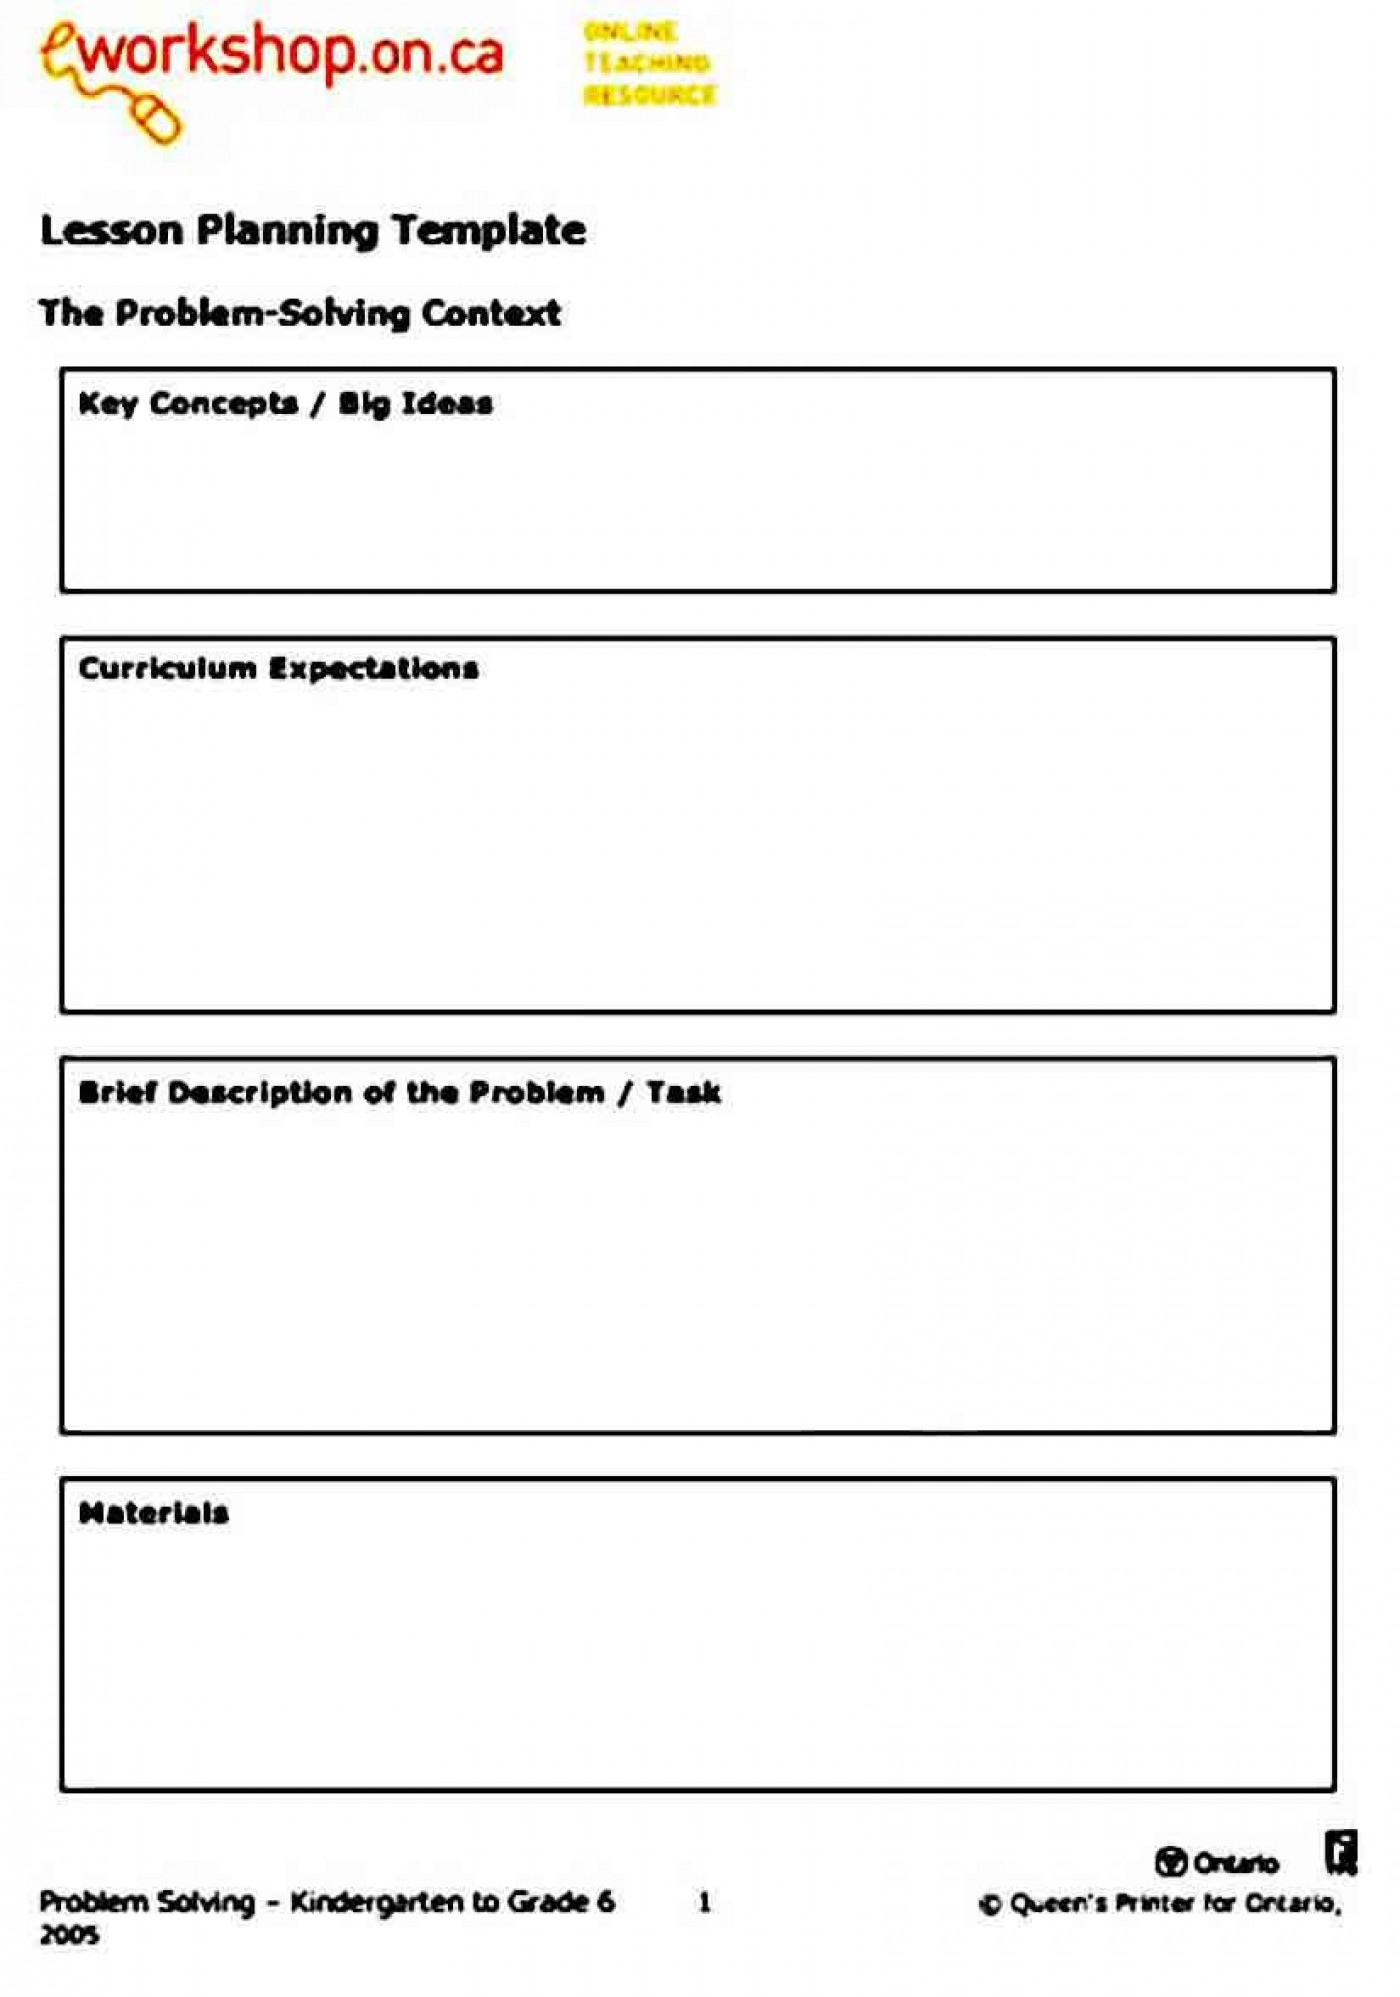 008 Surprising Simple Lesson Plan Template High Definition  Basic Format For Preschool Doc Kindergarten1400